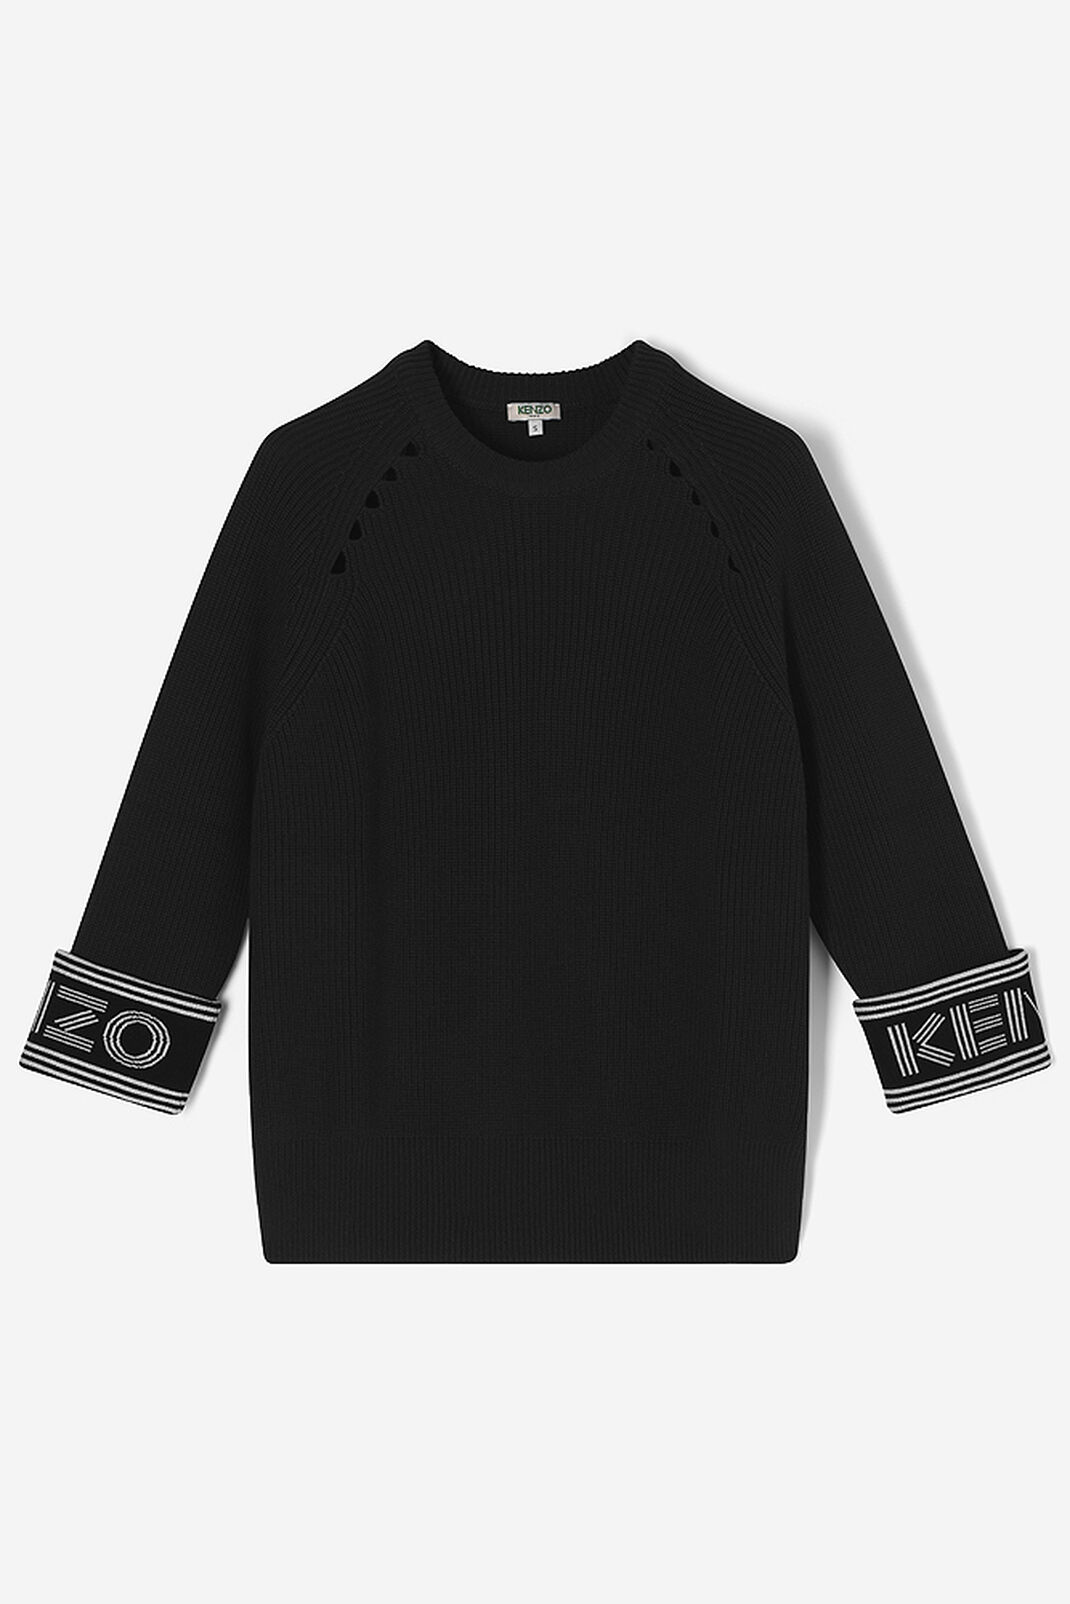 BLACK Knitted KENZO jumper for women